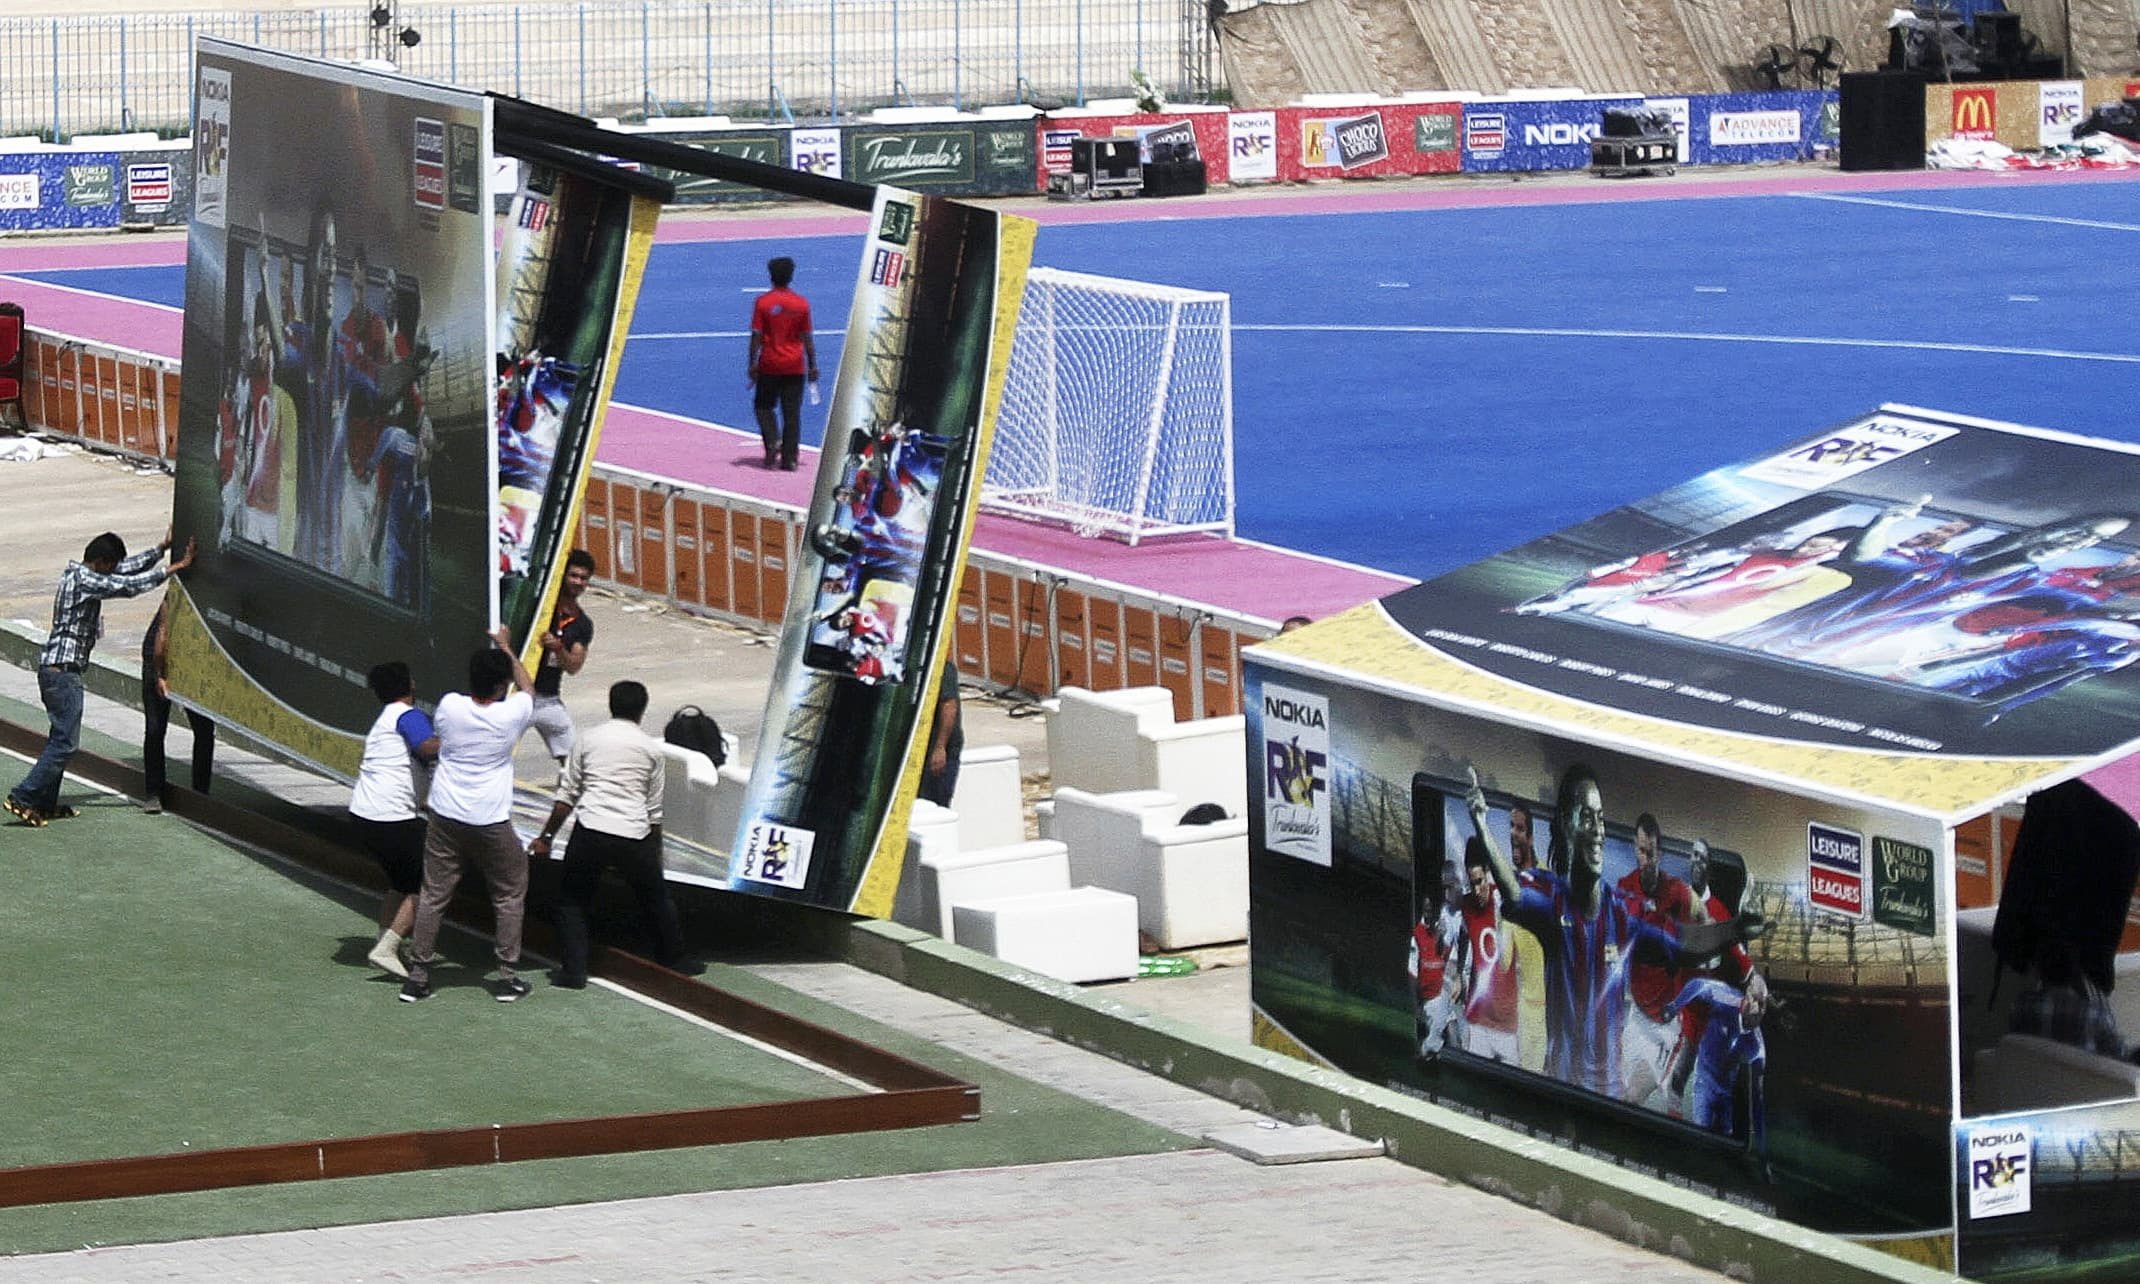 Workers install advertising boards at stadium. —AP